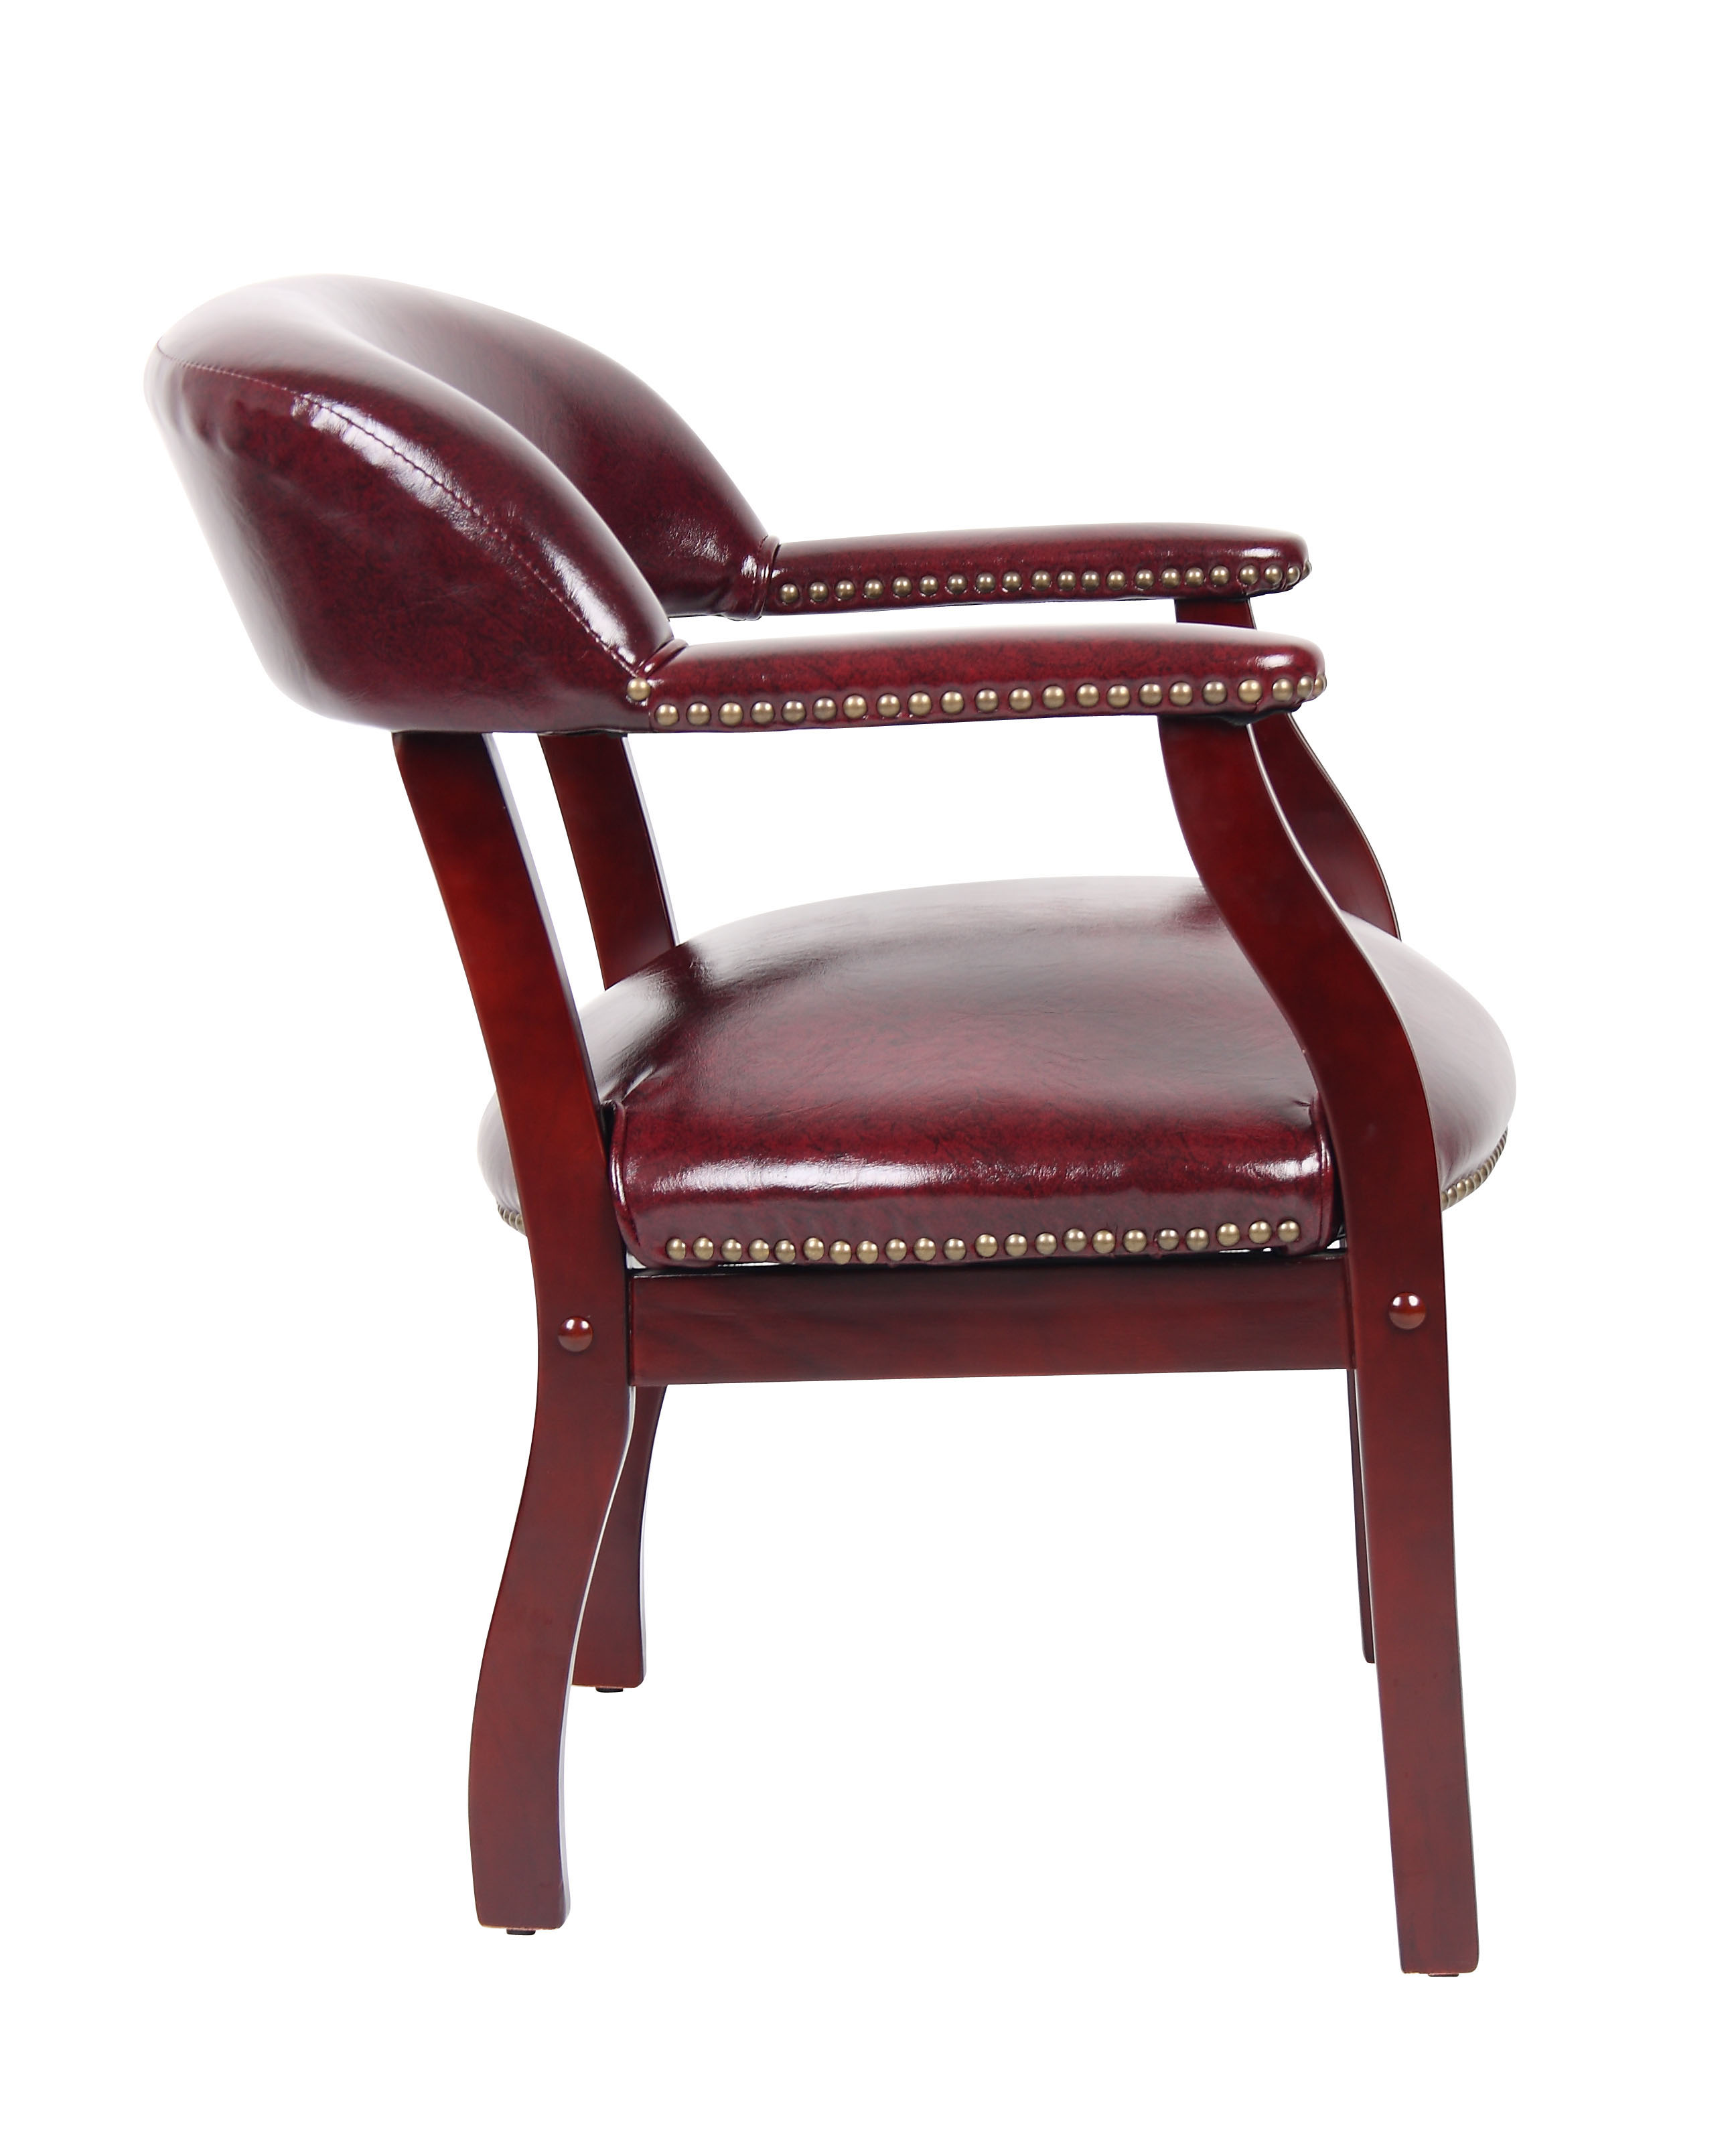 Boss Chairs Captain Chair In Burgundy Vinyl eFurniture Mart